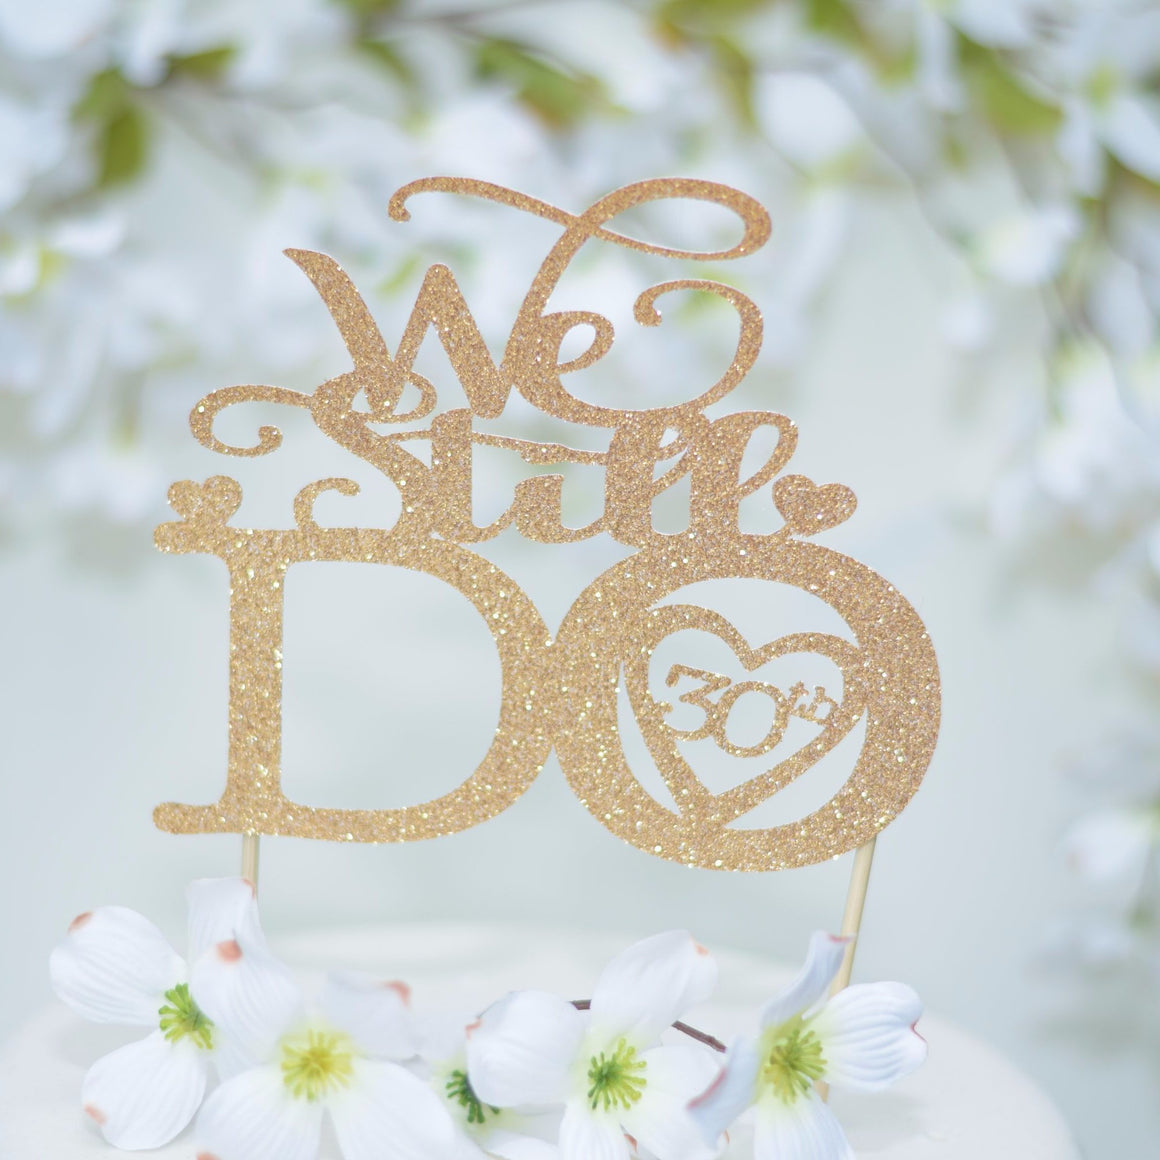 We Still Do 30th Anniversary Cake Topper in Gold Glitter font on a white wedding cake with floral background